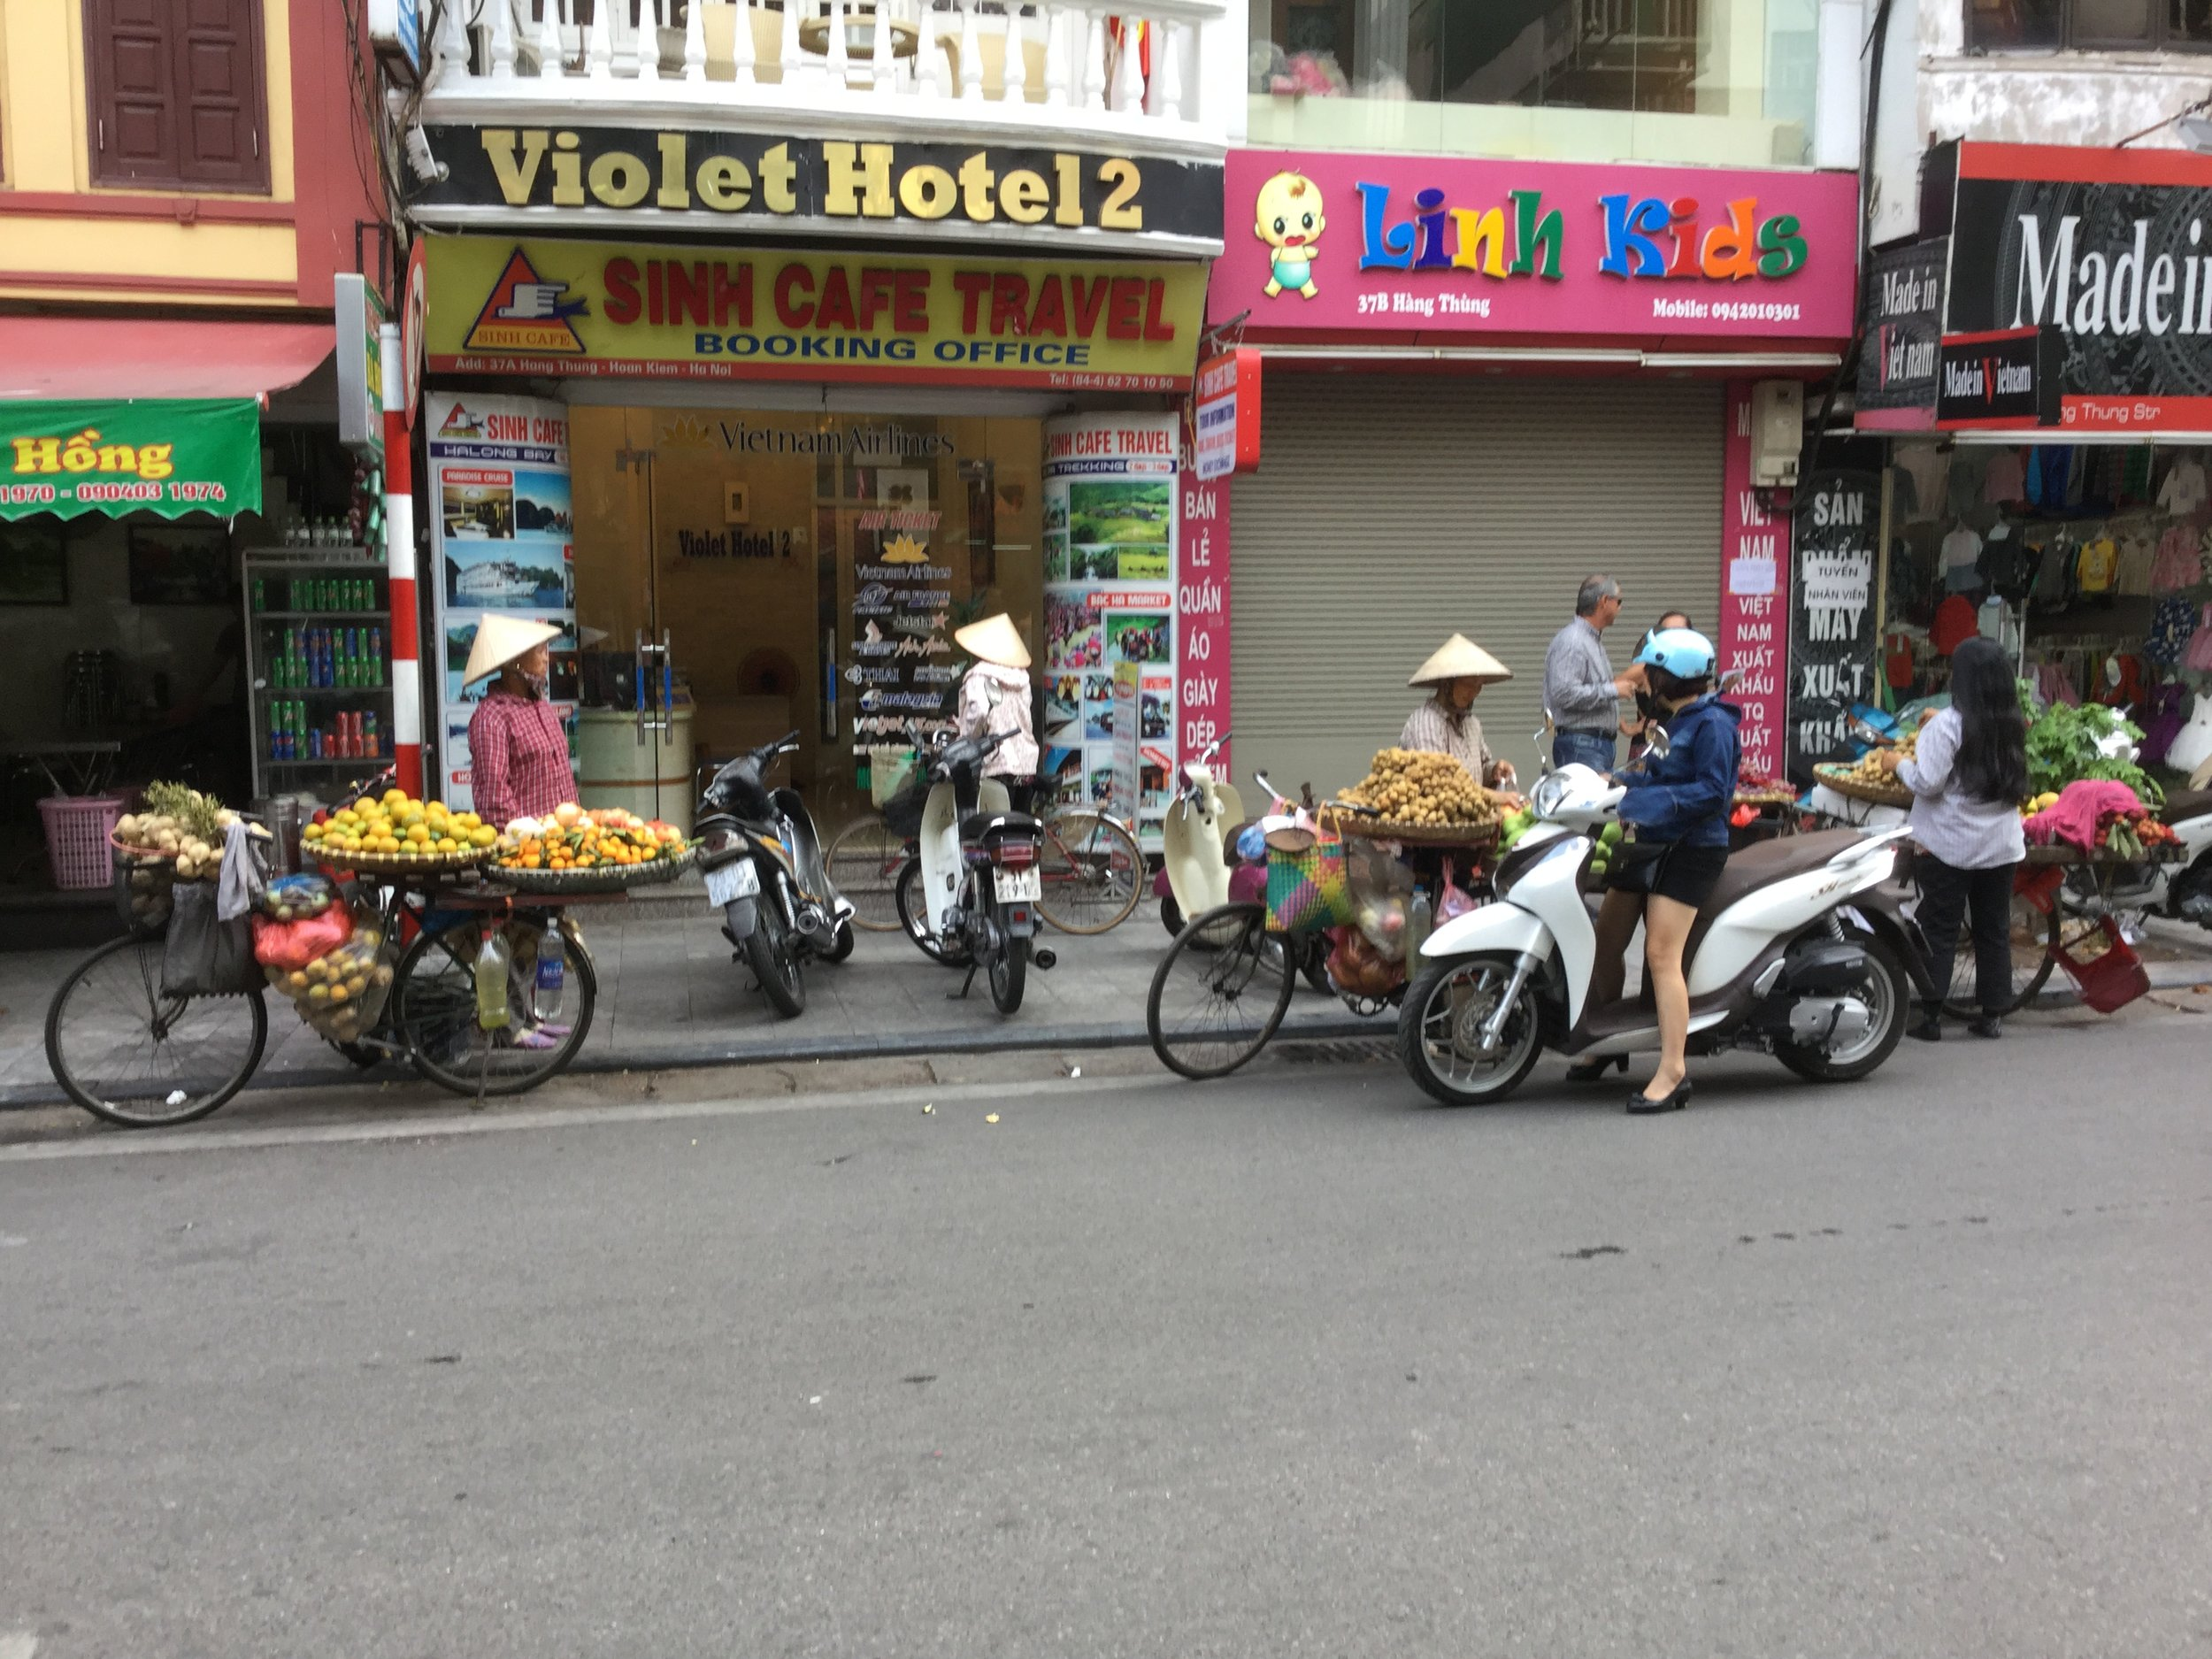 Stores in the street and stores on a bicycle.